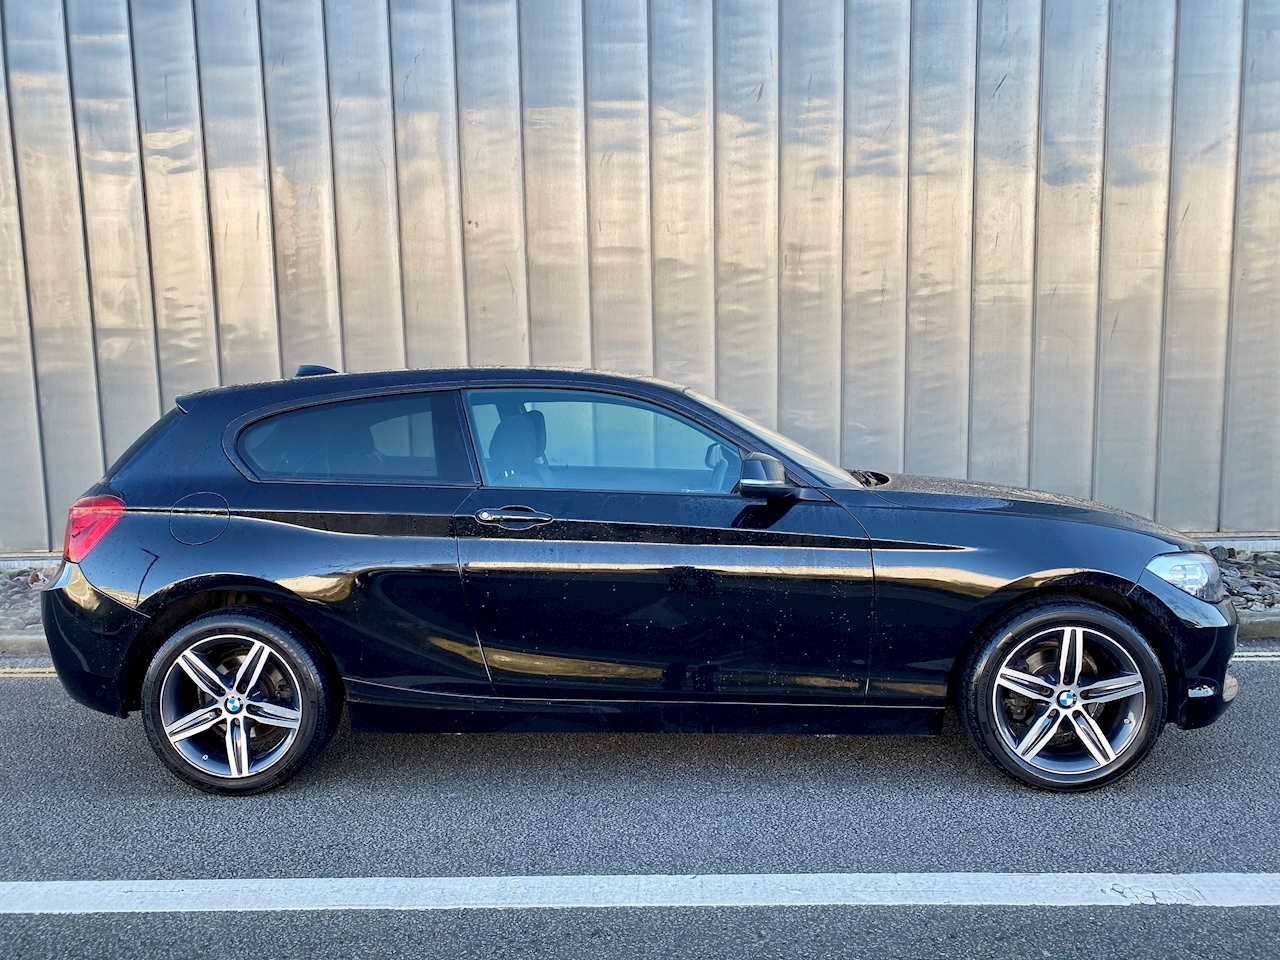 1 Series 118I Sport - 2017 - NAV - TEL - AUTO LIGHTS / WIPERS - BMW WARRANTY REMAINING - 1 OWNER 1.5 3dr Hatchback Manual Petrol